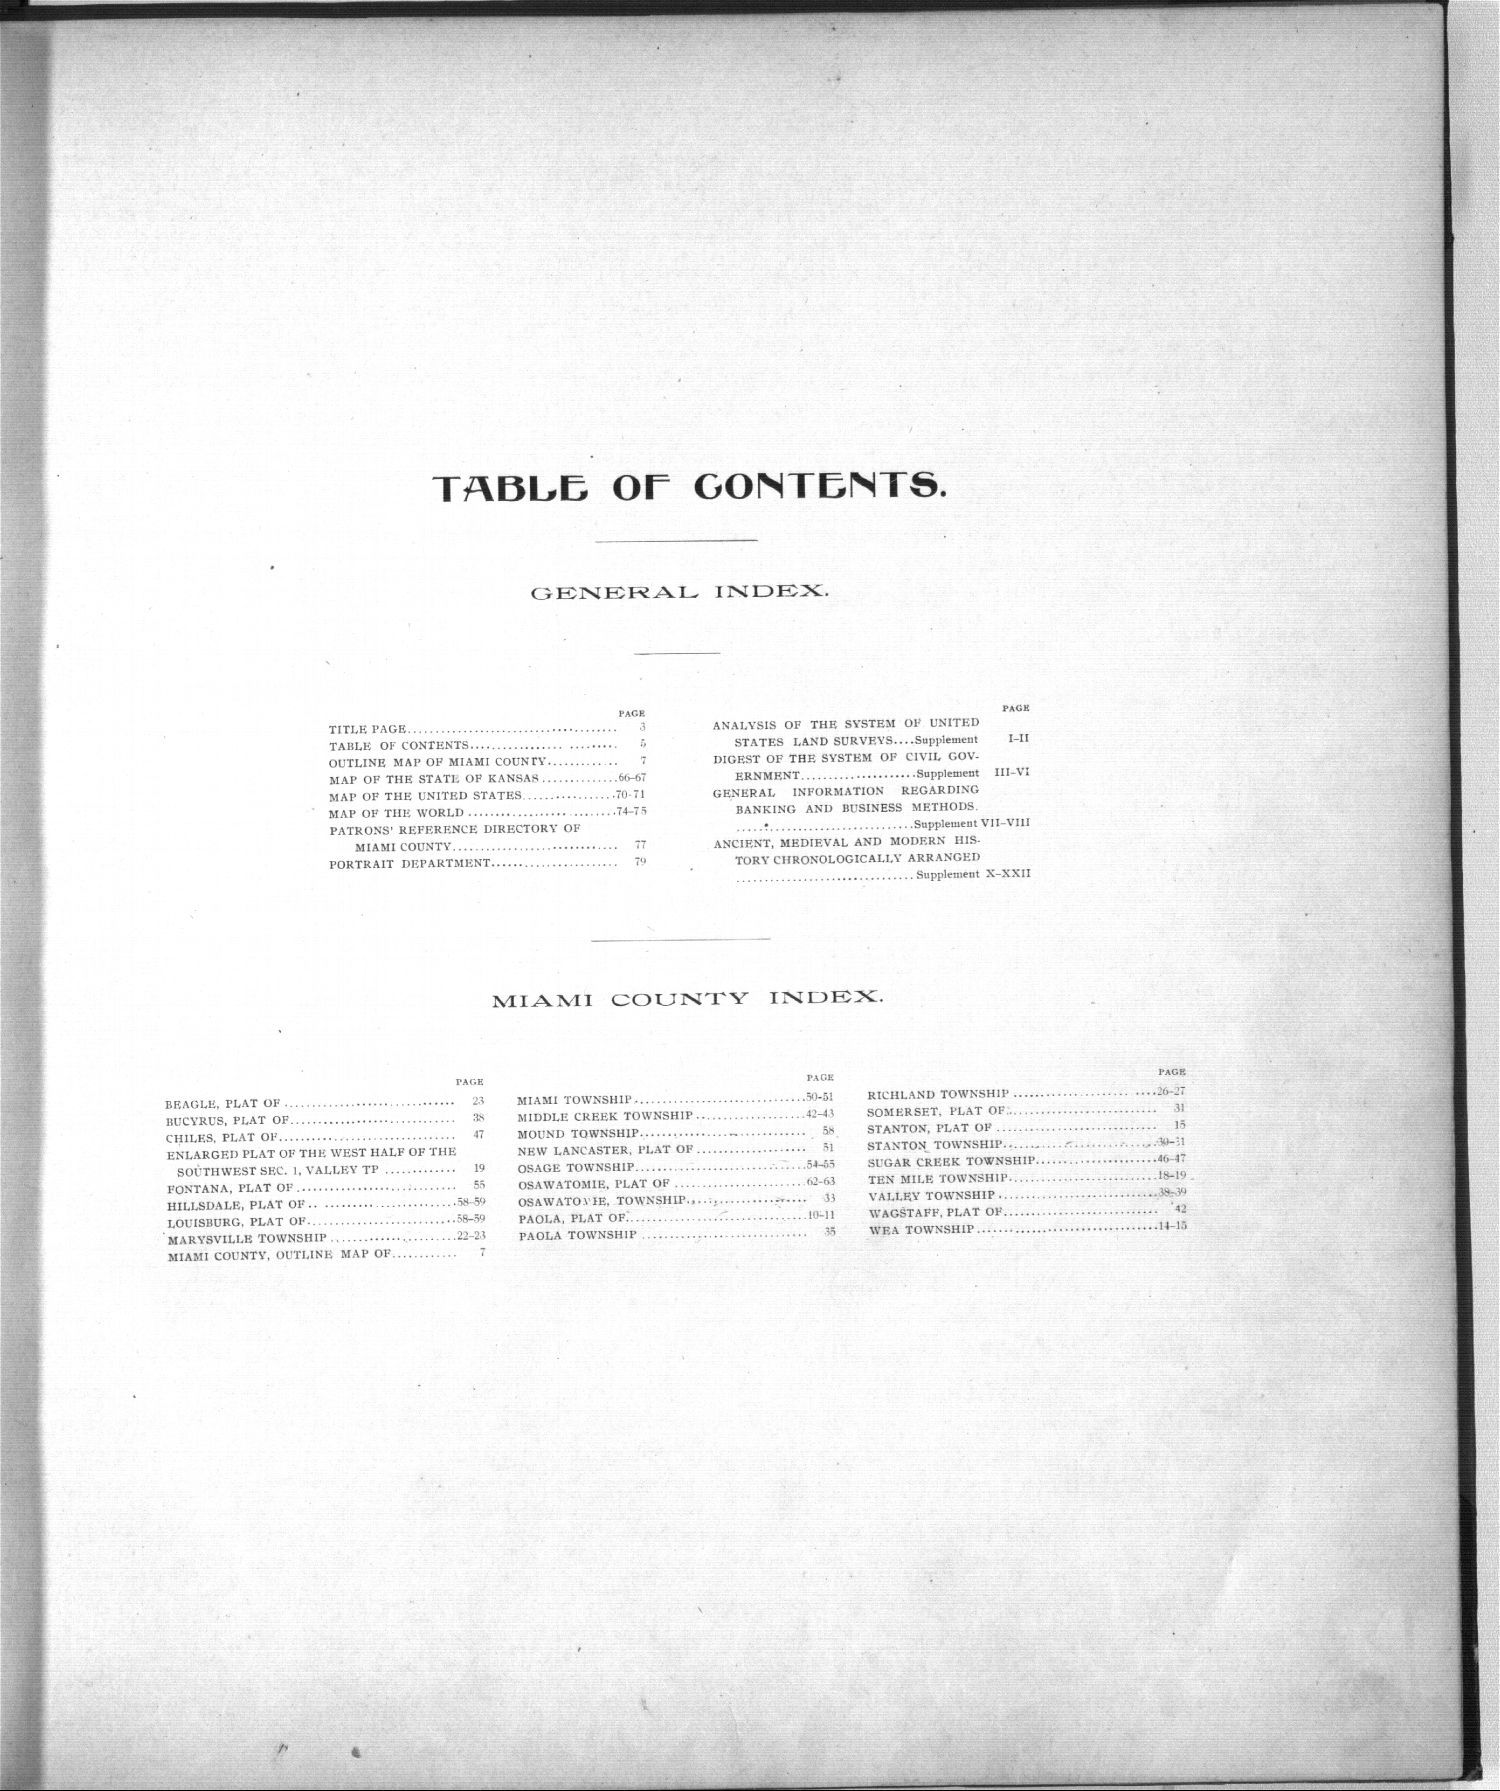 Standard atlas, Miami County, Kansas - Table of Contents